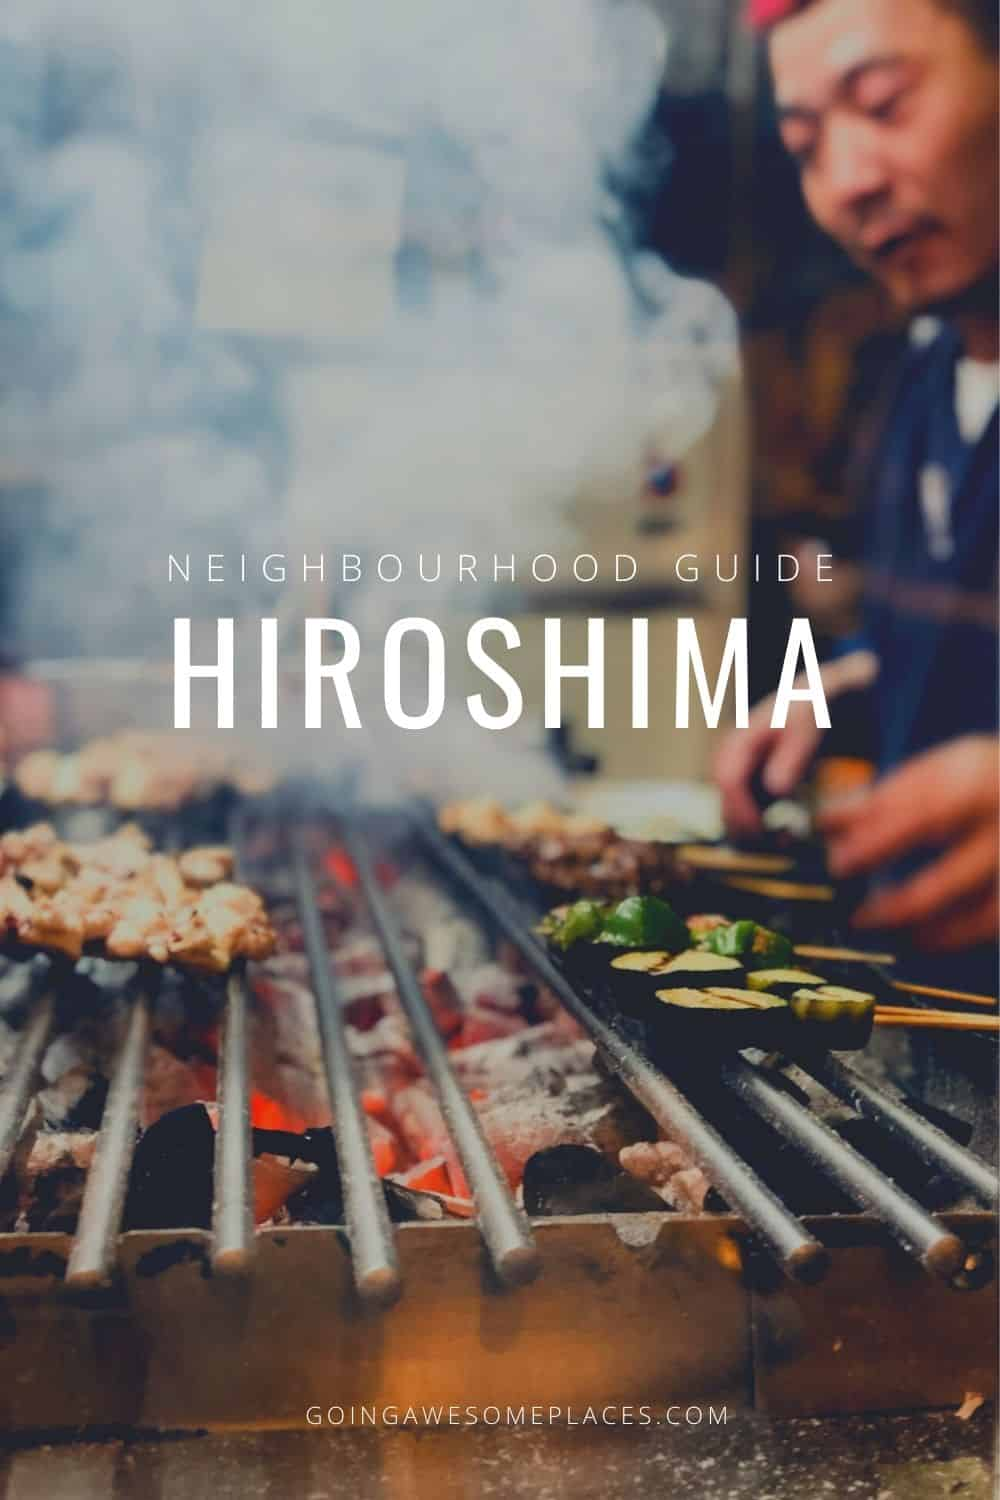 Where To Stay In Hiroshima – A Guide To The Best Hotels and Neighborhoods